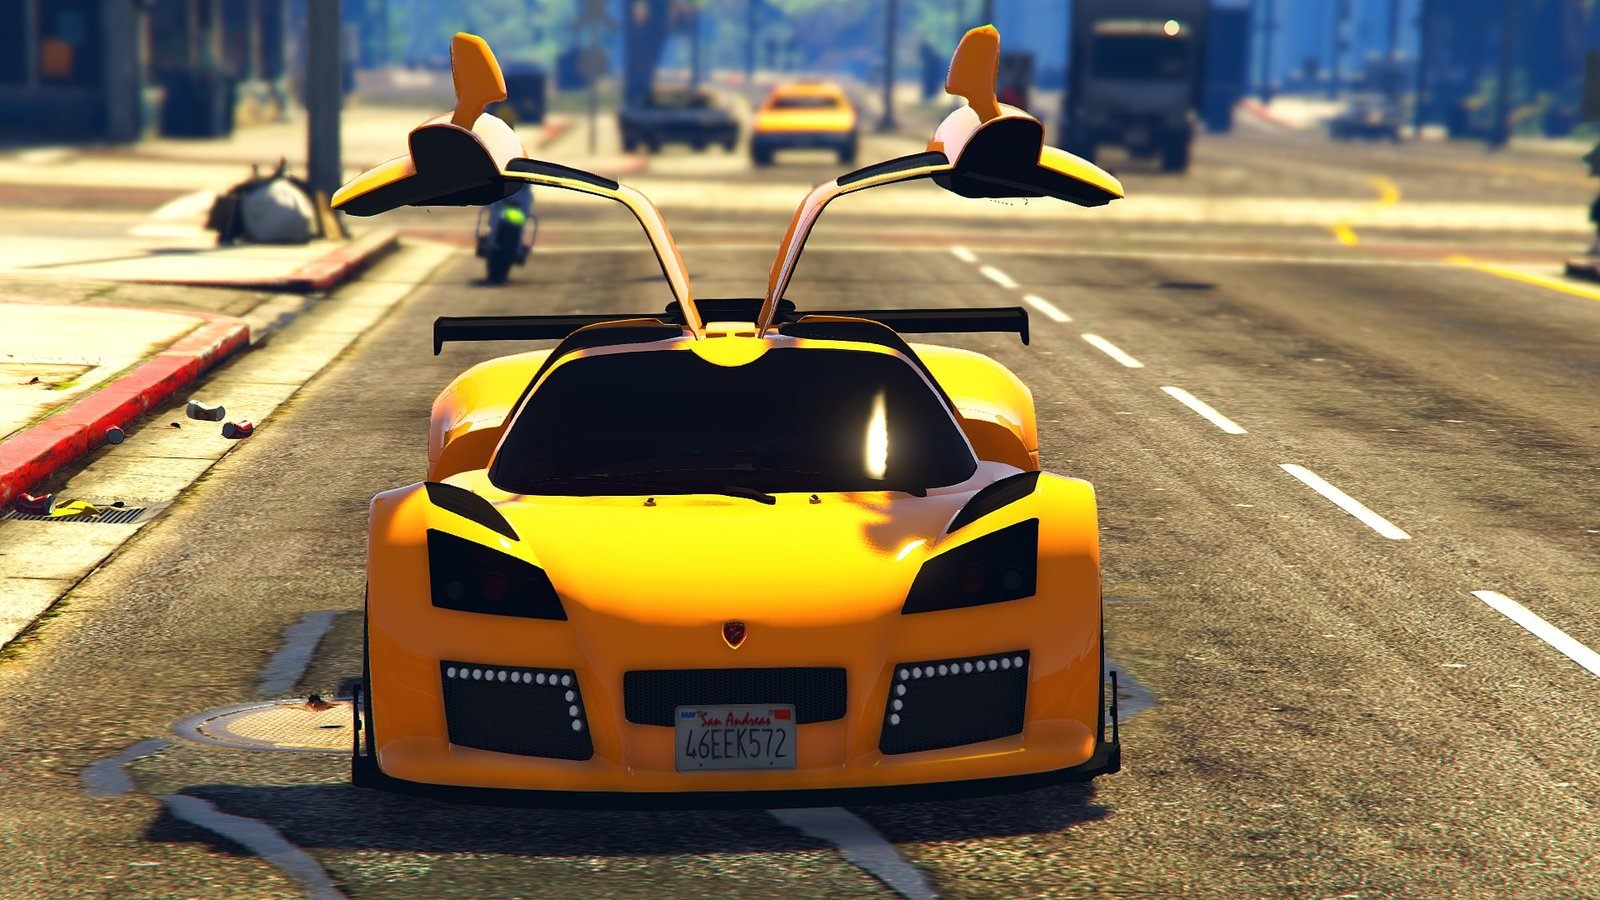 gumpert apollo s vehicules pour gta v sur gta modding. Black Bedroom Furniture Sets. Home Design Ideas